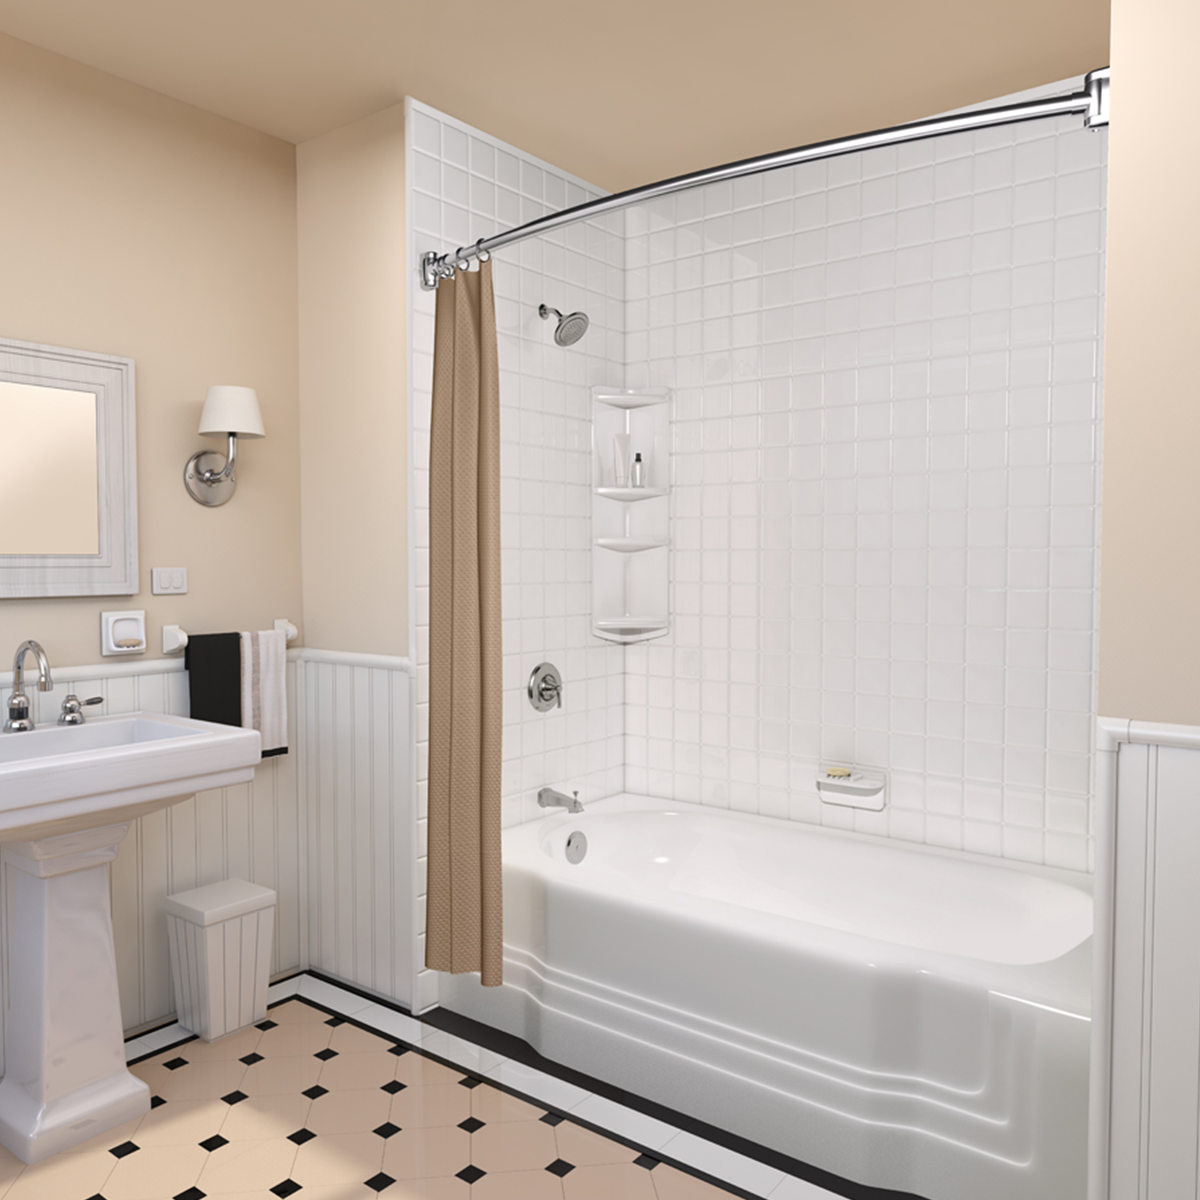 A Bath Fitter Remodel Makes Your Entire Bathroom Feel New Home - Bath fitters for the bathroom